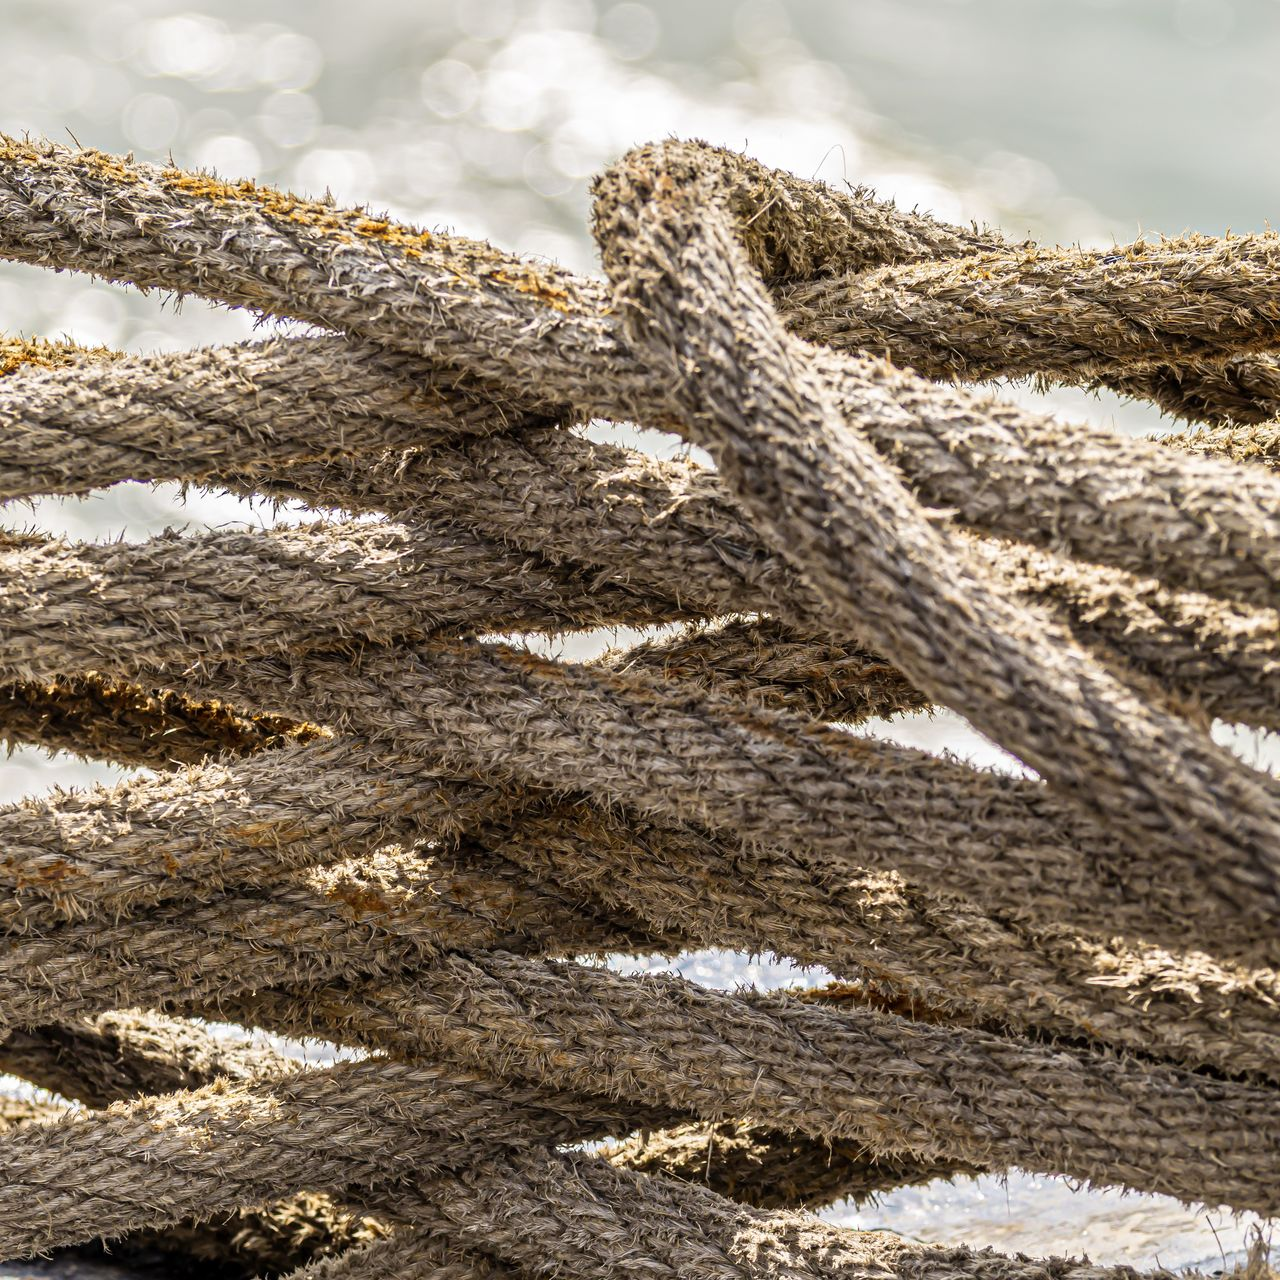 rope, no people, day, close-up, strength, pattern, focus on foreground, nature, textured, outdoors, tied up, land, tangled, brown, twisted, still life, equipment, water, connection, wood - material, complexity